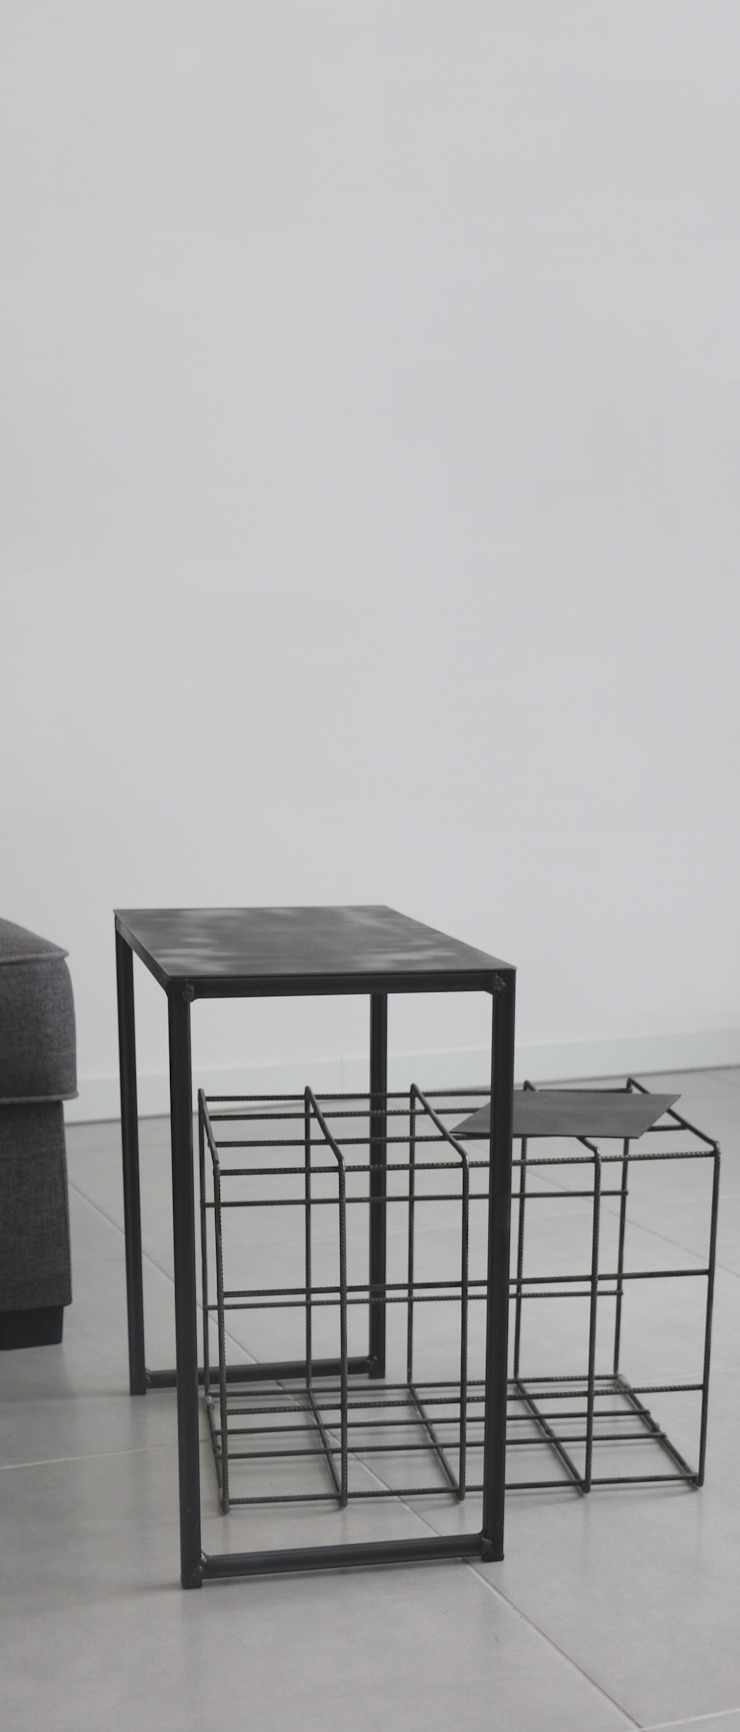 CHIARA MARCHIONNI ARCHITECT Living roomSide tables & trays Iron/Steel Black